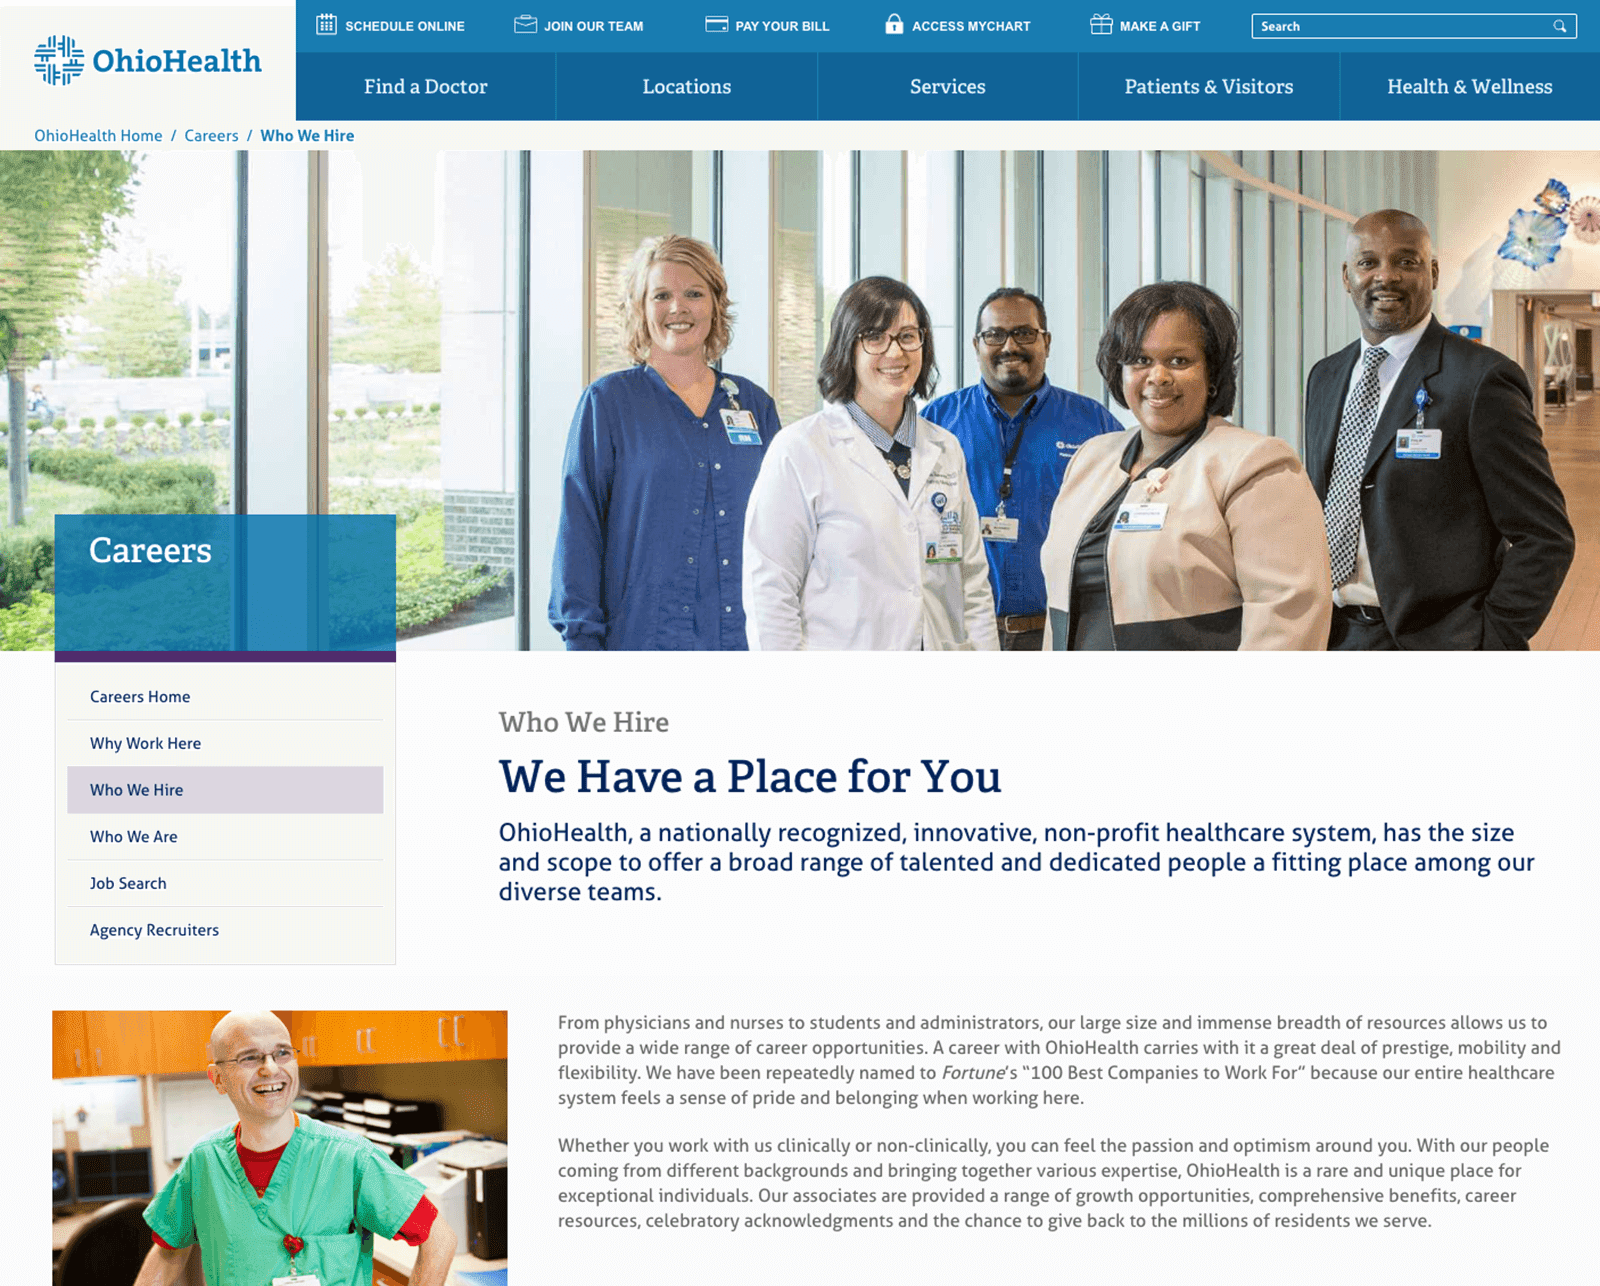 OhioHealth's careers website